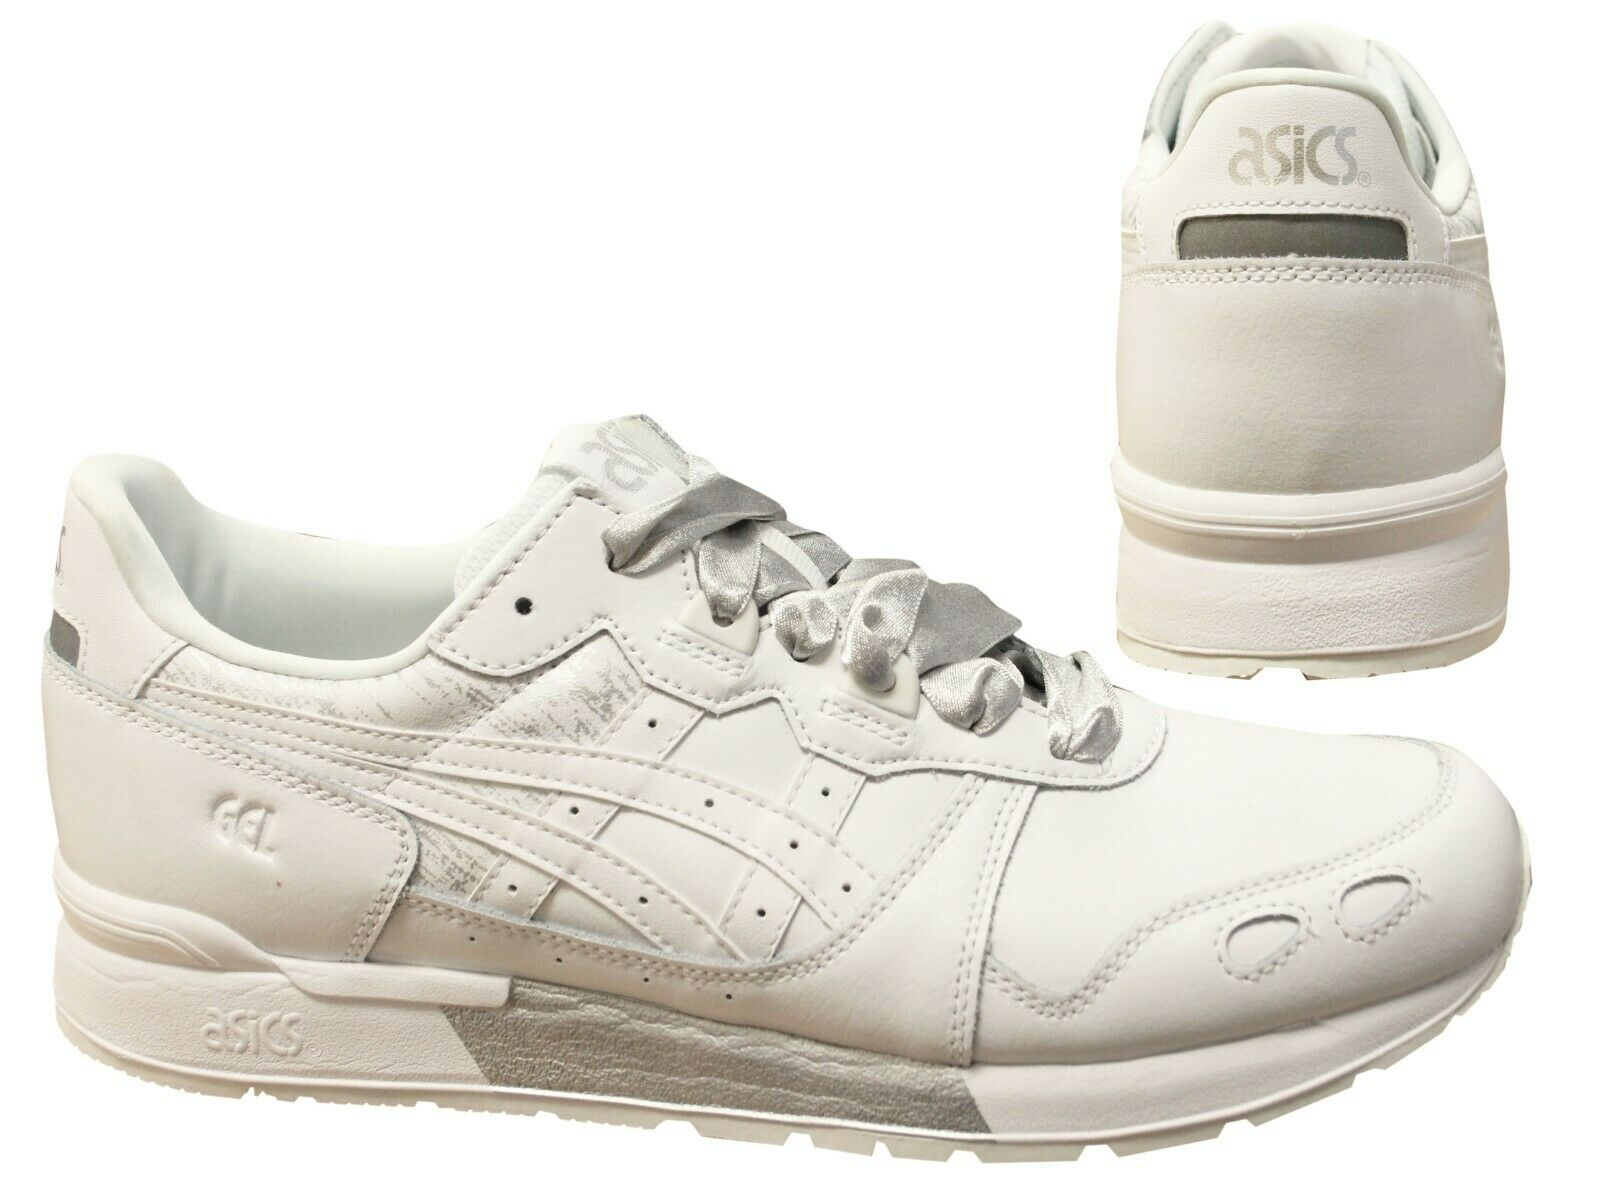 Details about Asics Tiger Gel-Lyte White Silver Lace Up Womens Trainers  1192A034 100 B91C